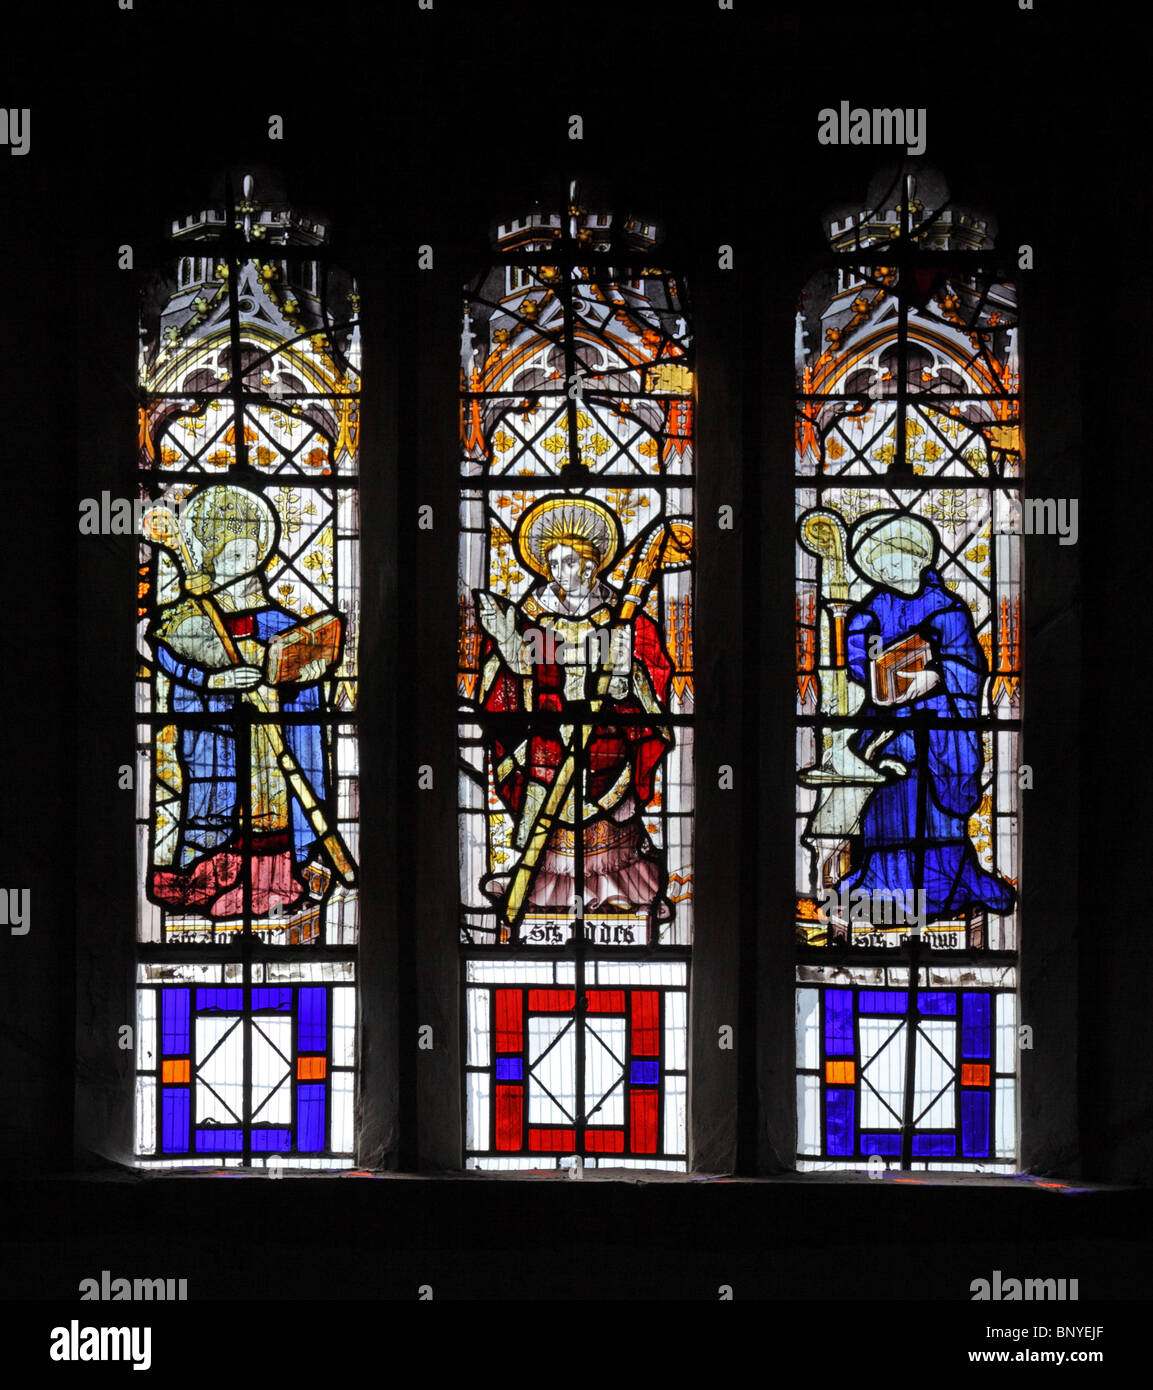 A 16th century stained glass window depicting Saints Cuthbert, Chad and Giles, All Saints Church, Ladbroke, Warwickshire - Stock Image